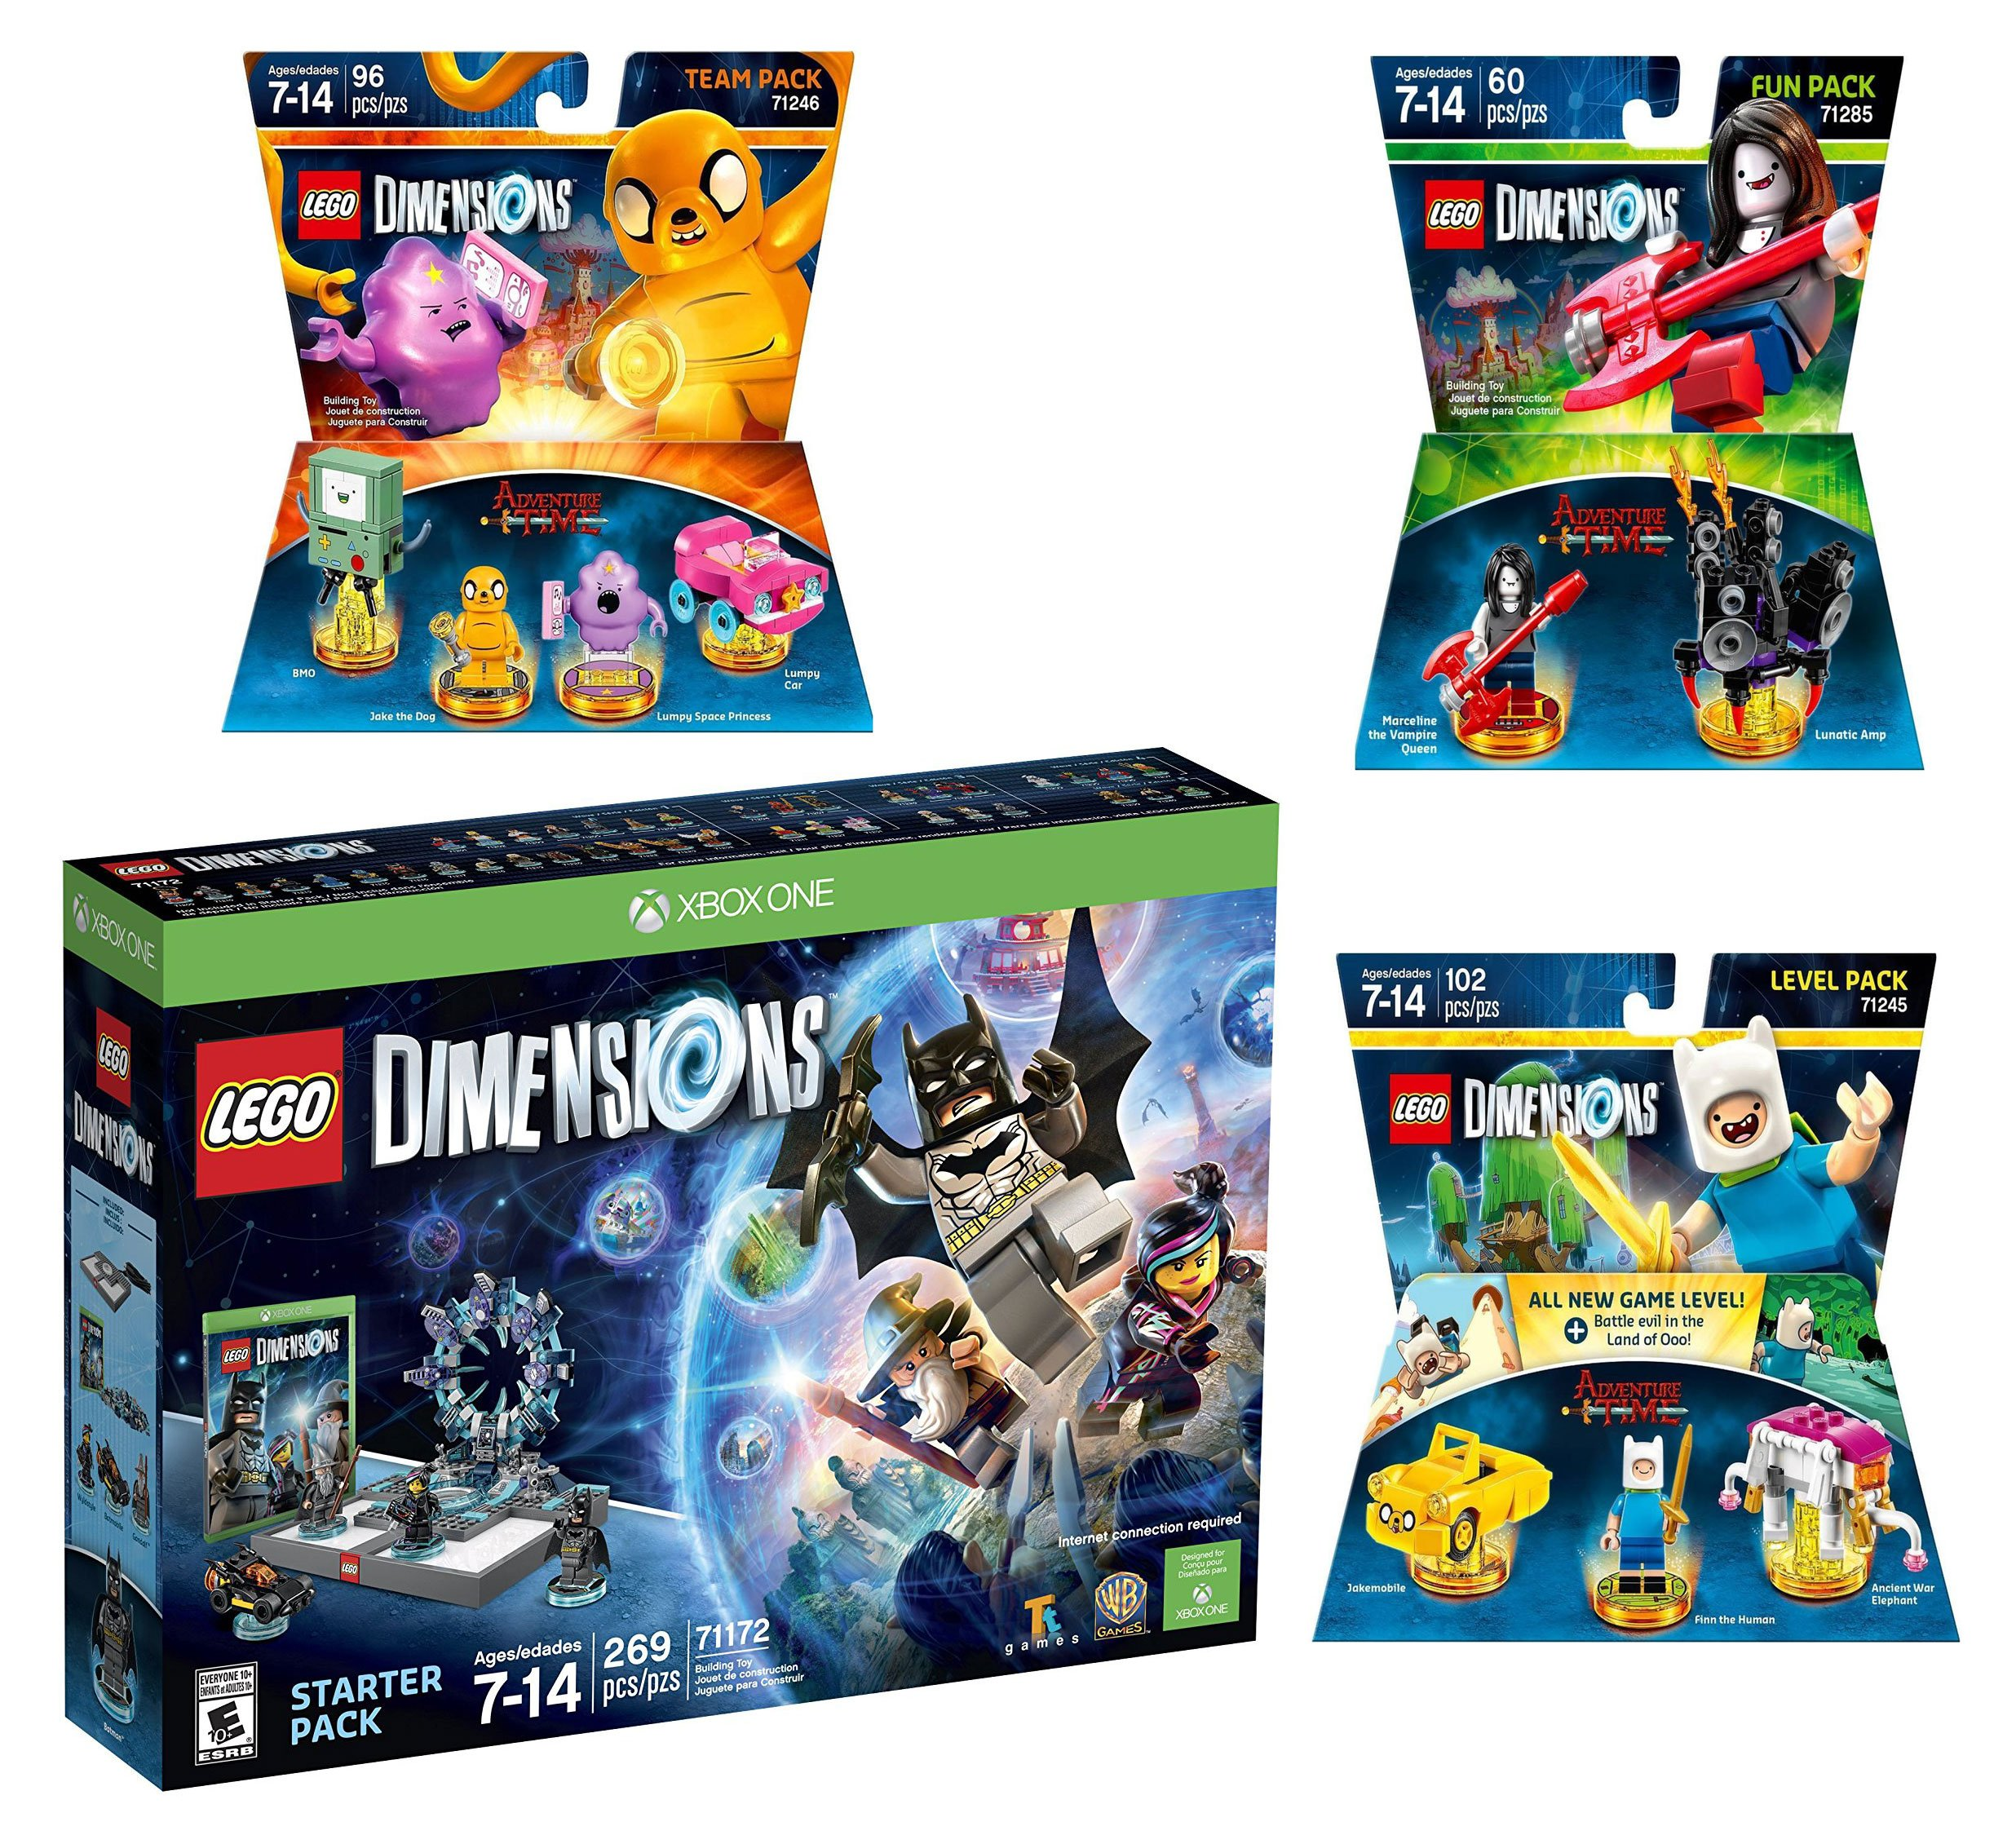 Lego Dimensions Starter Pack + Adventure Time Finn The Human Level Pack + Jake The Dog Team Pack + Marceline The Vampire Queen Fun Pack for Xbox One or Xbox One S Console